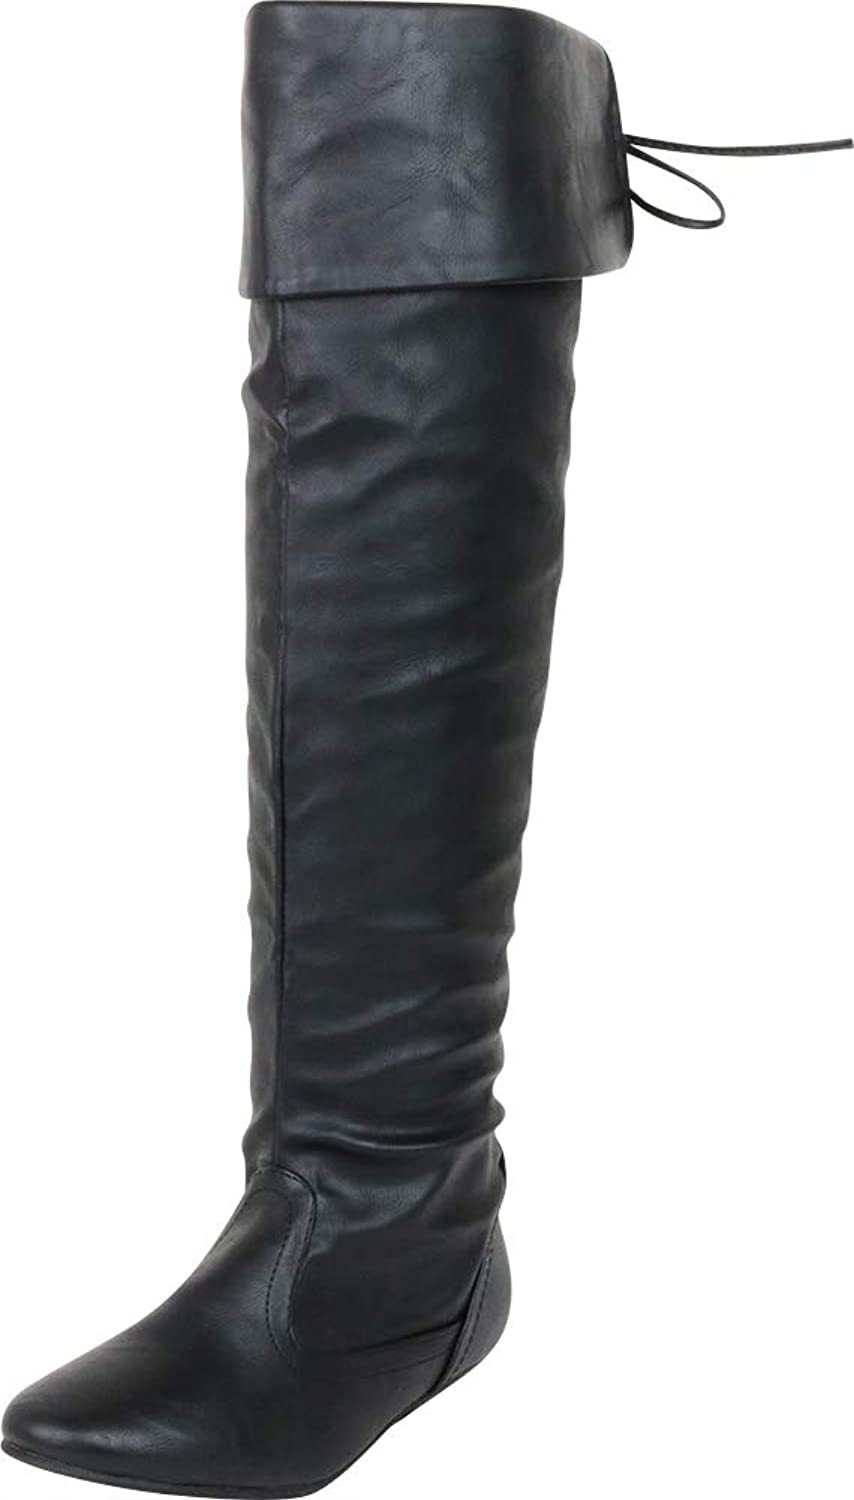 Cambridge Select Women's Thigh-High Fold Over Cuff Back Tie Flat Over The Knee Boot